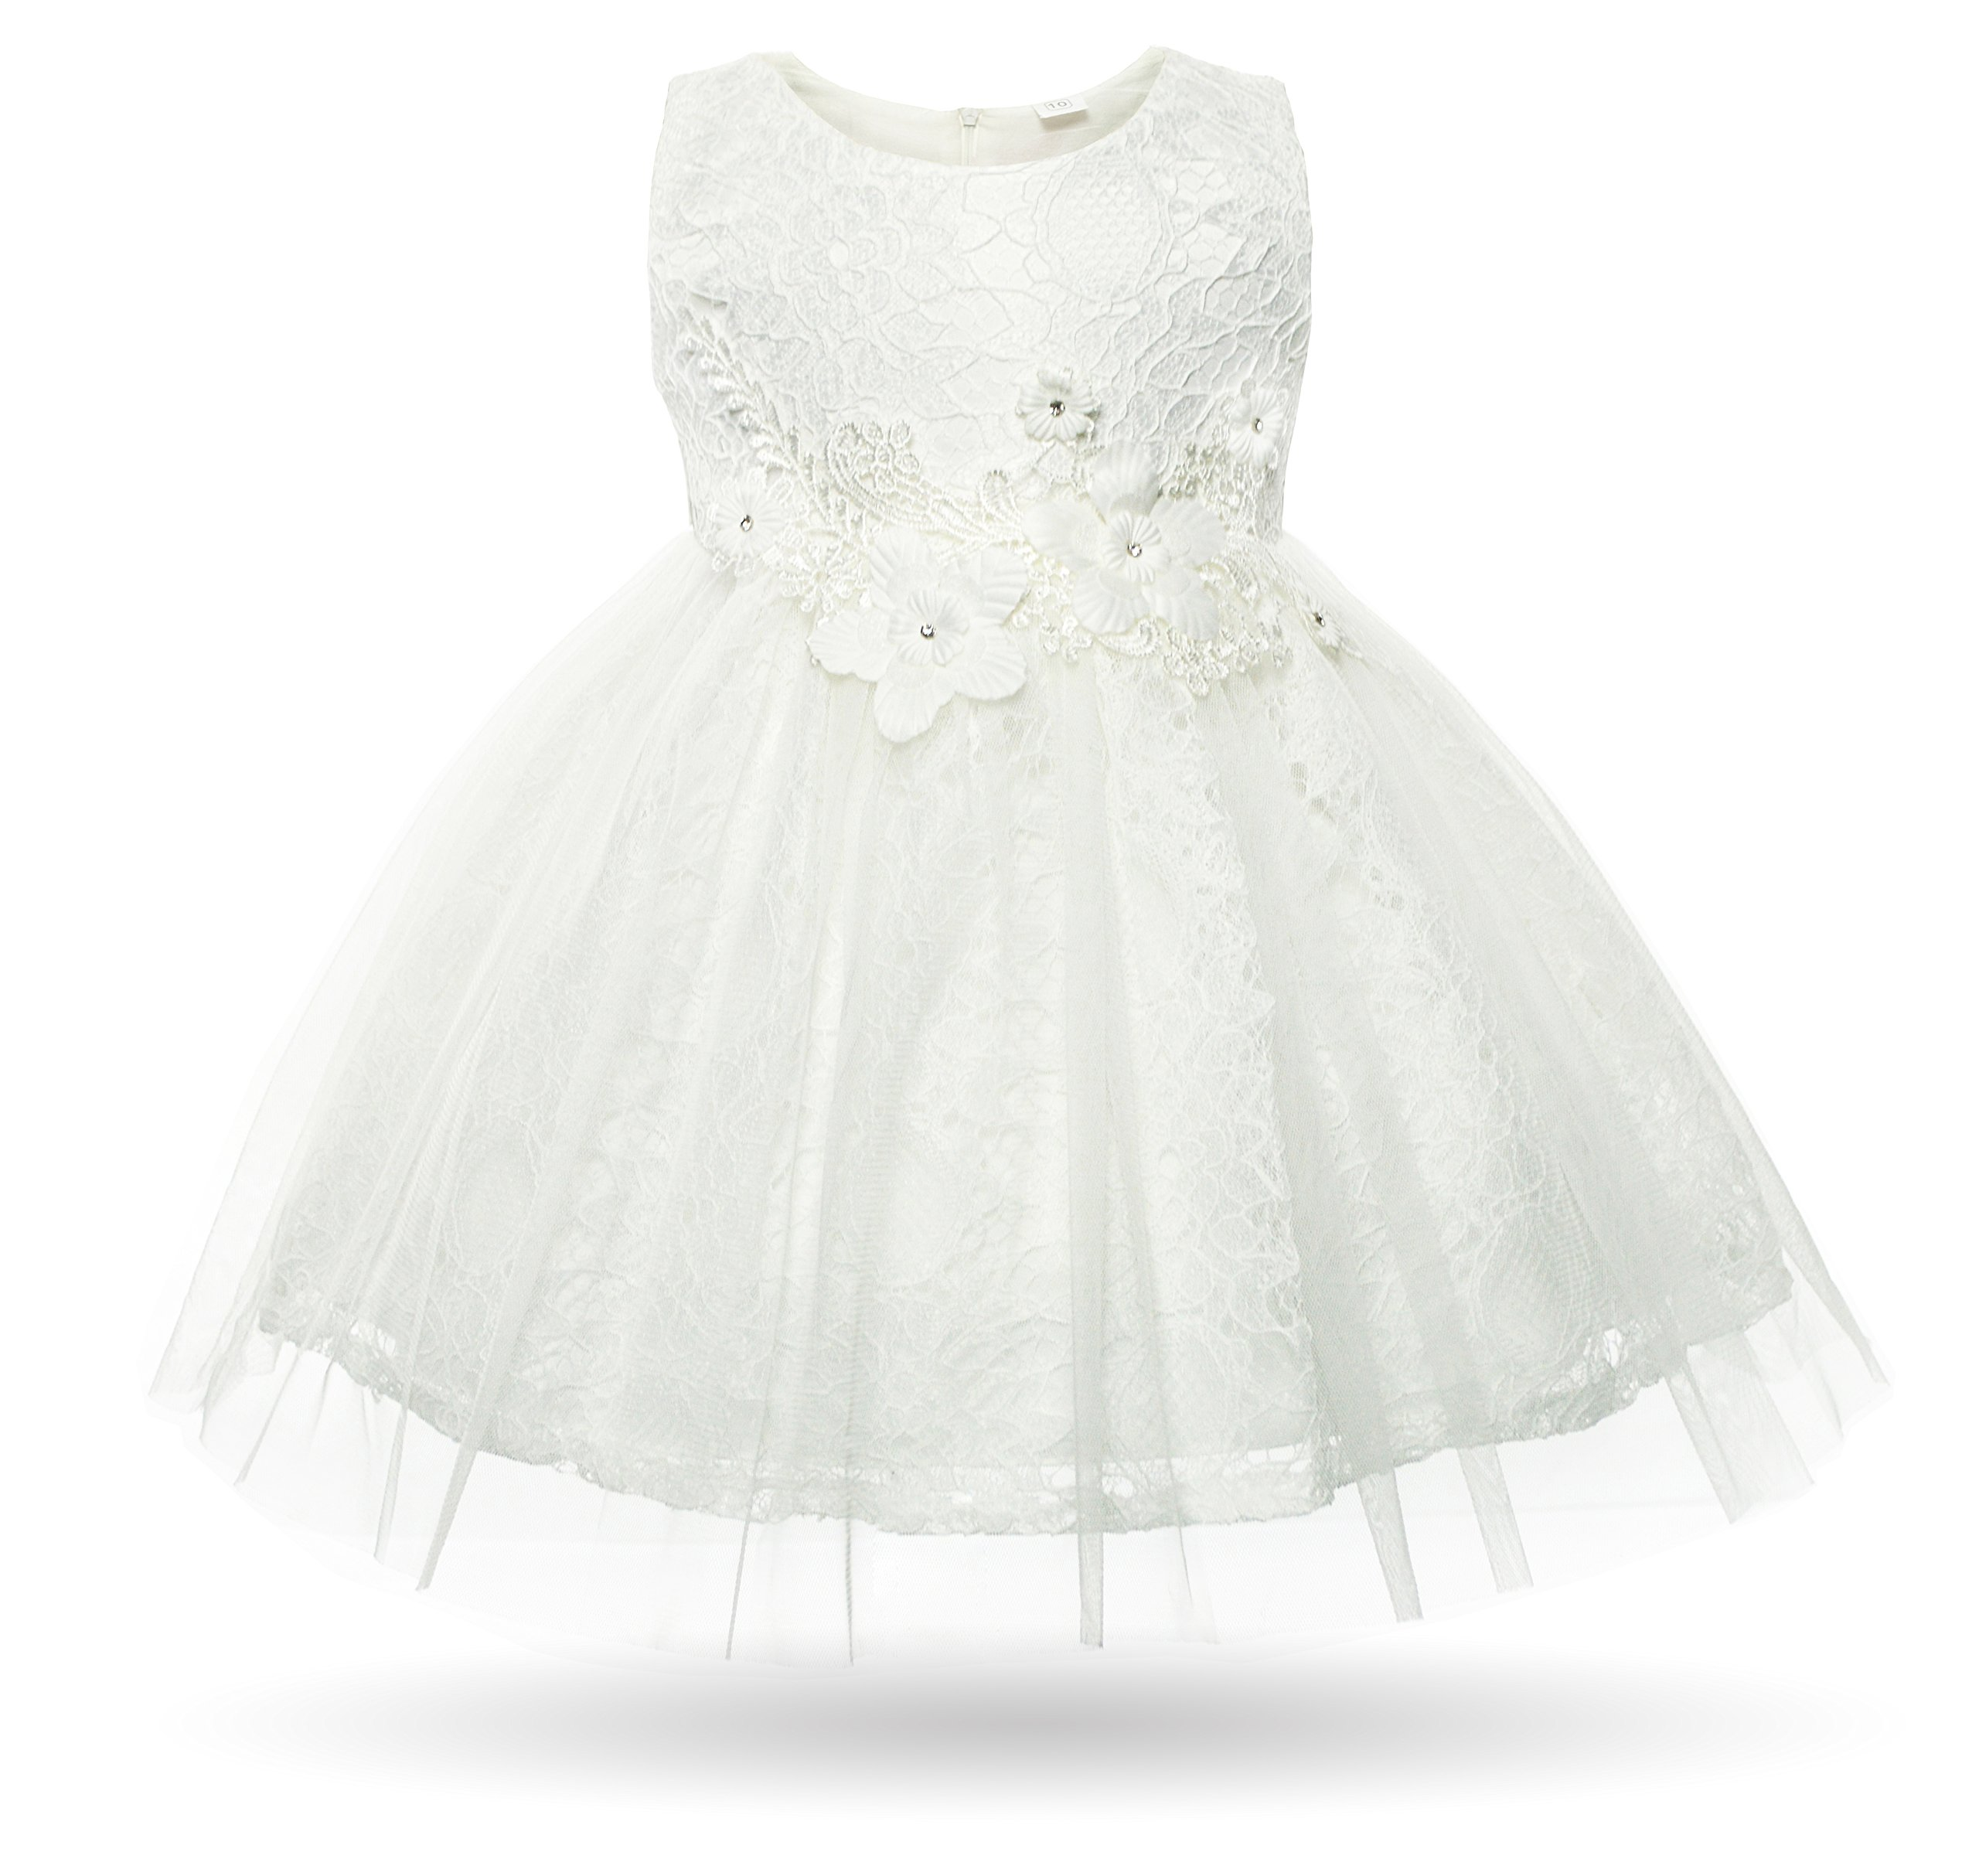 CIELARKO Baby Girl Dress Infant Flower Lace Wedding Party Dresses for 0-24 Months (0-3 Months, White)